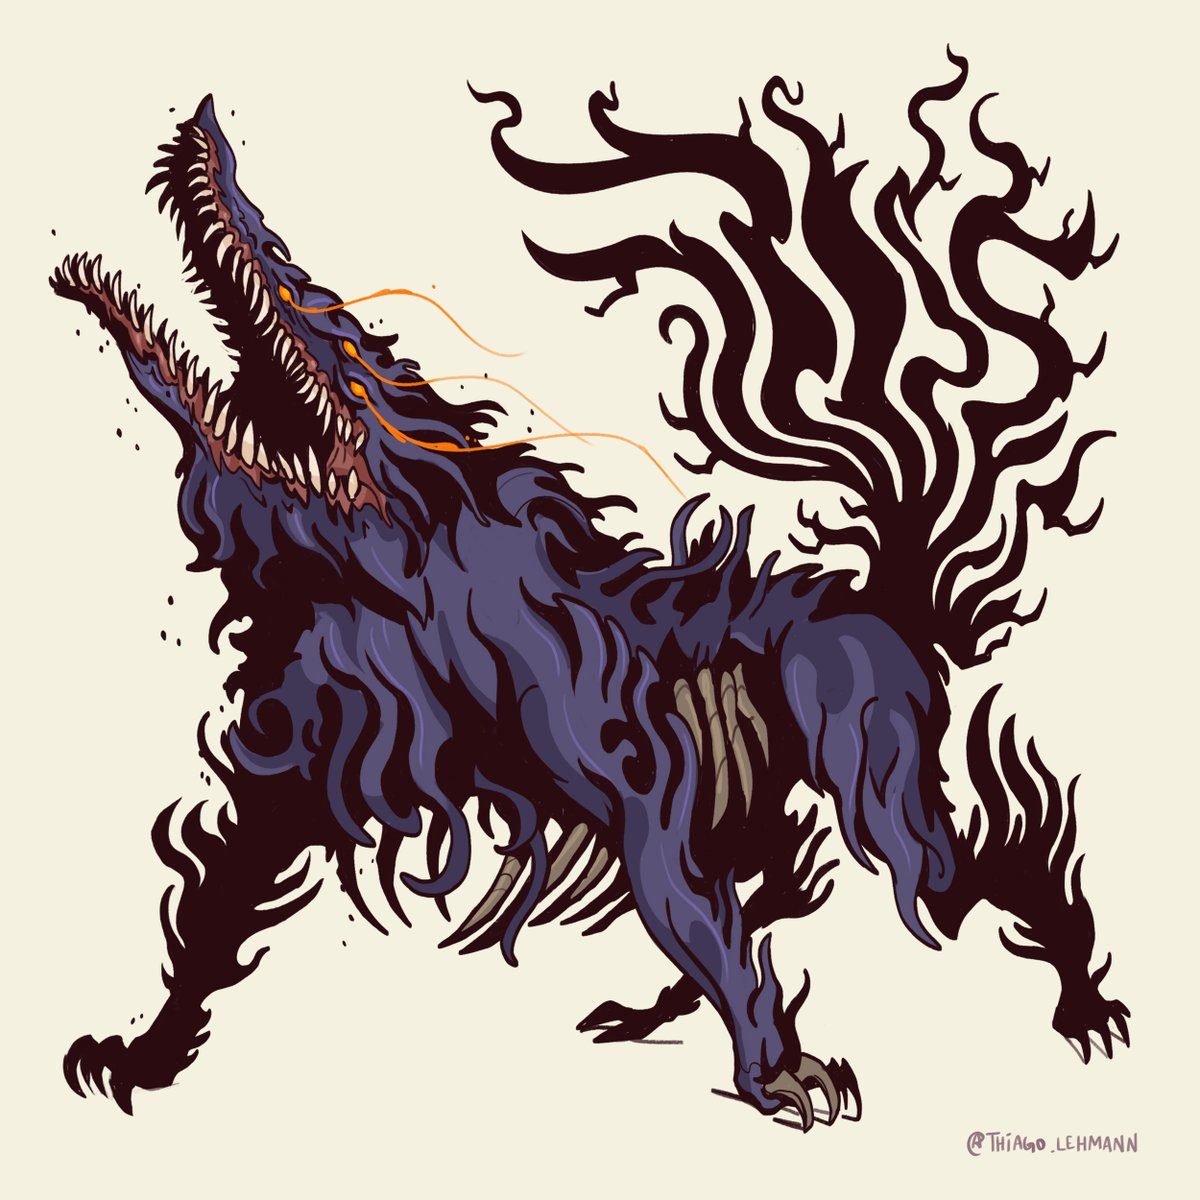 Sulyvahn's Beast - is not a boss, but definetly a harder for than a lot of them. Love his design, reminds me of something out of a Tim Burton's movie.  #darksouls #darksoulsfanart #darksouls3 #darksoulsmemes https://t.co/ubtXCoGO25